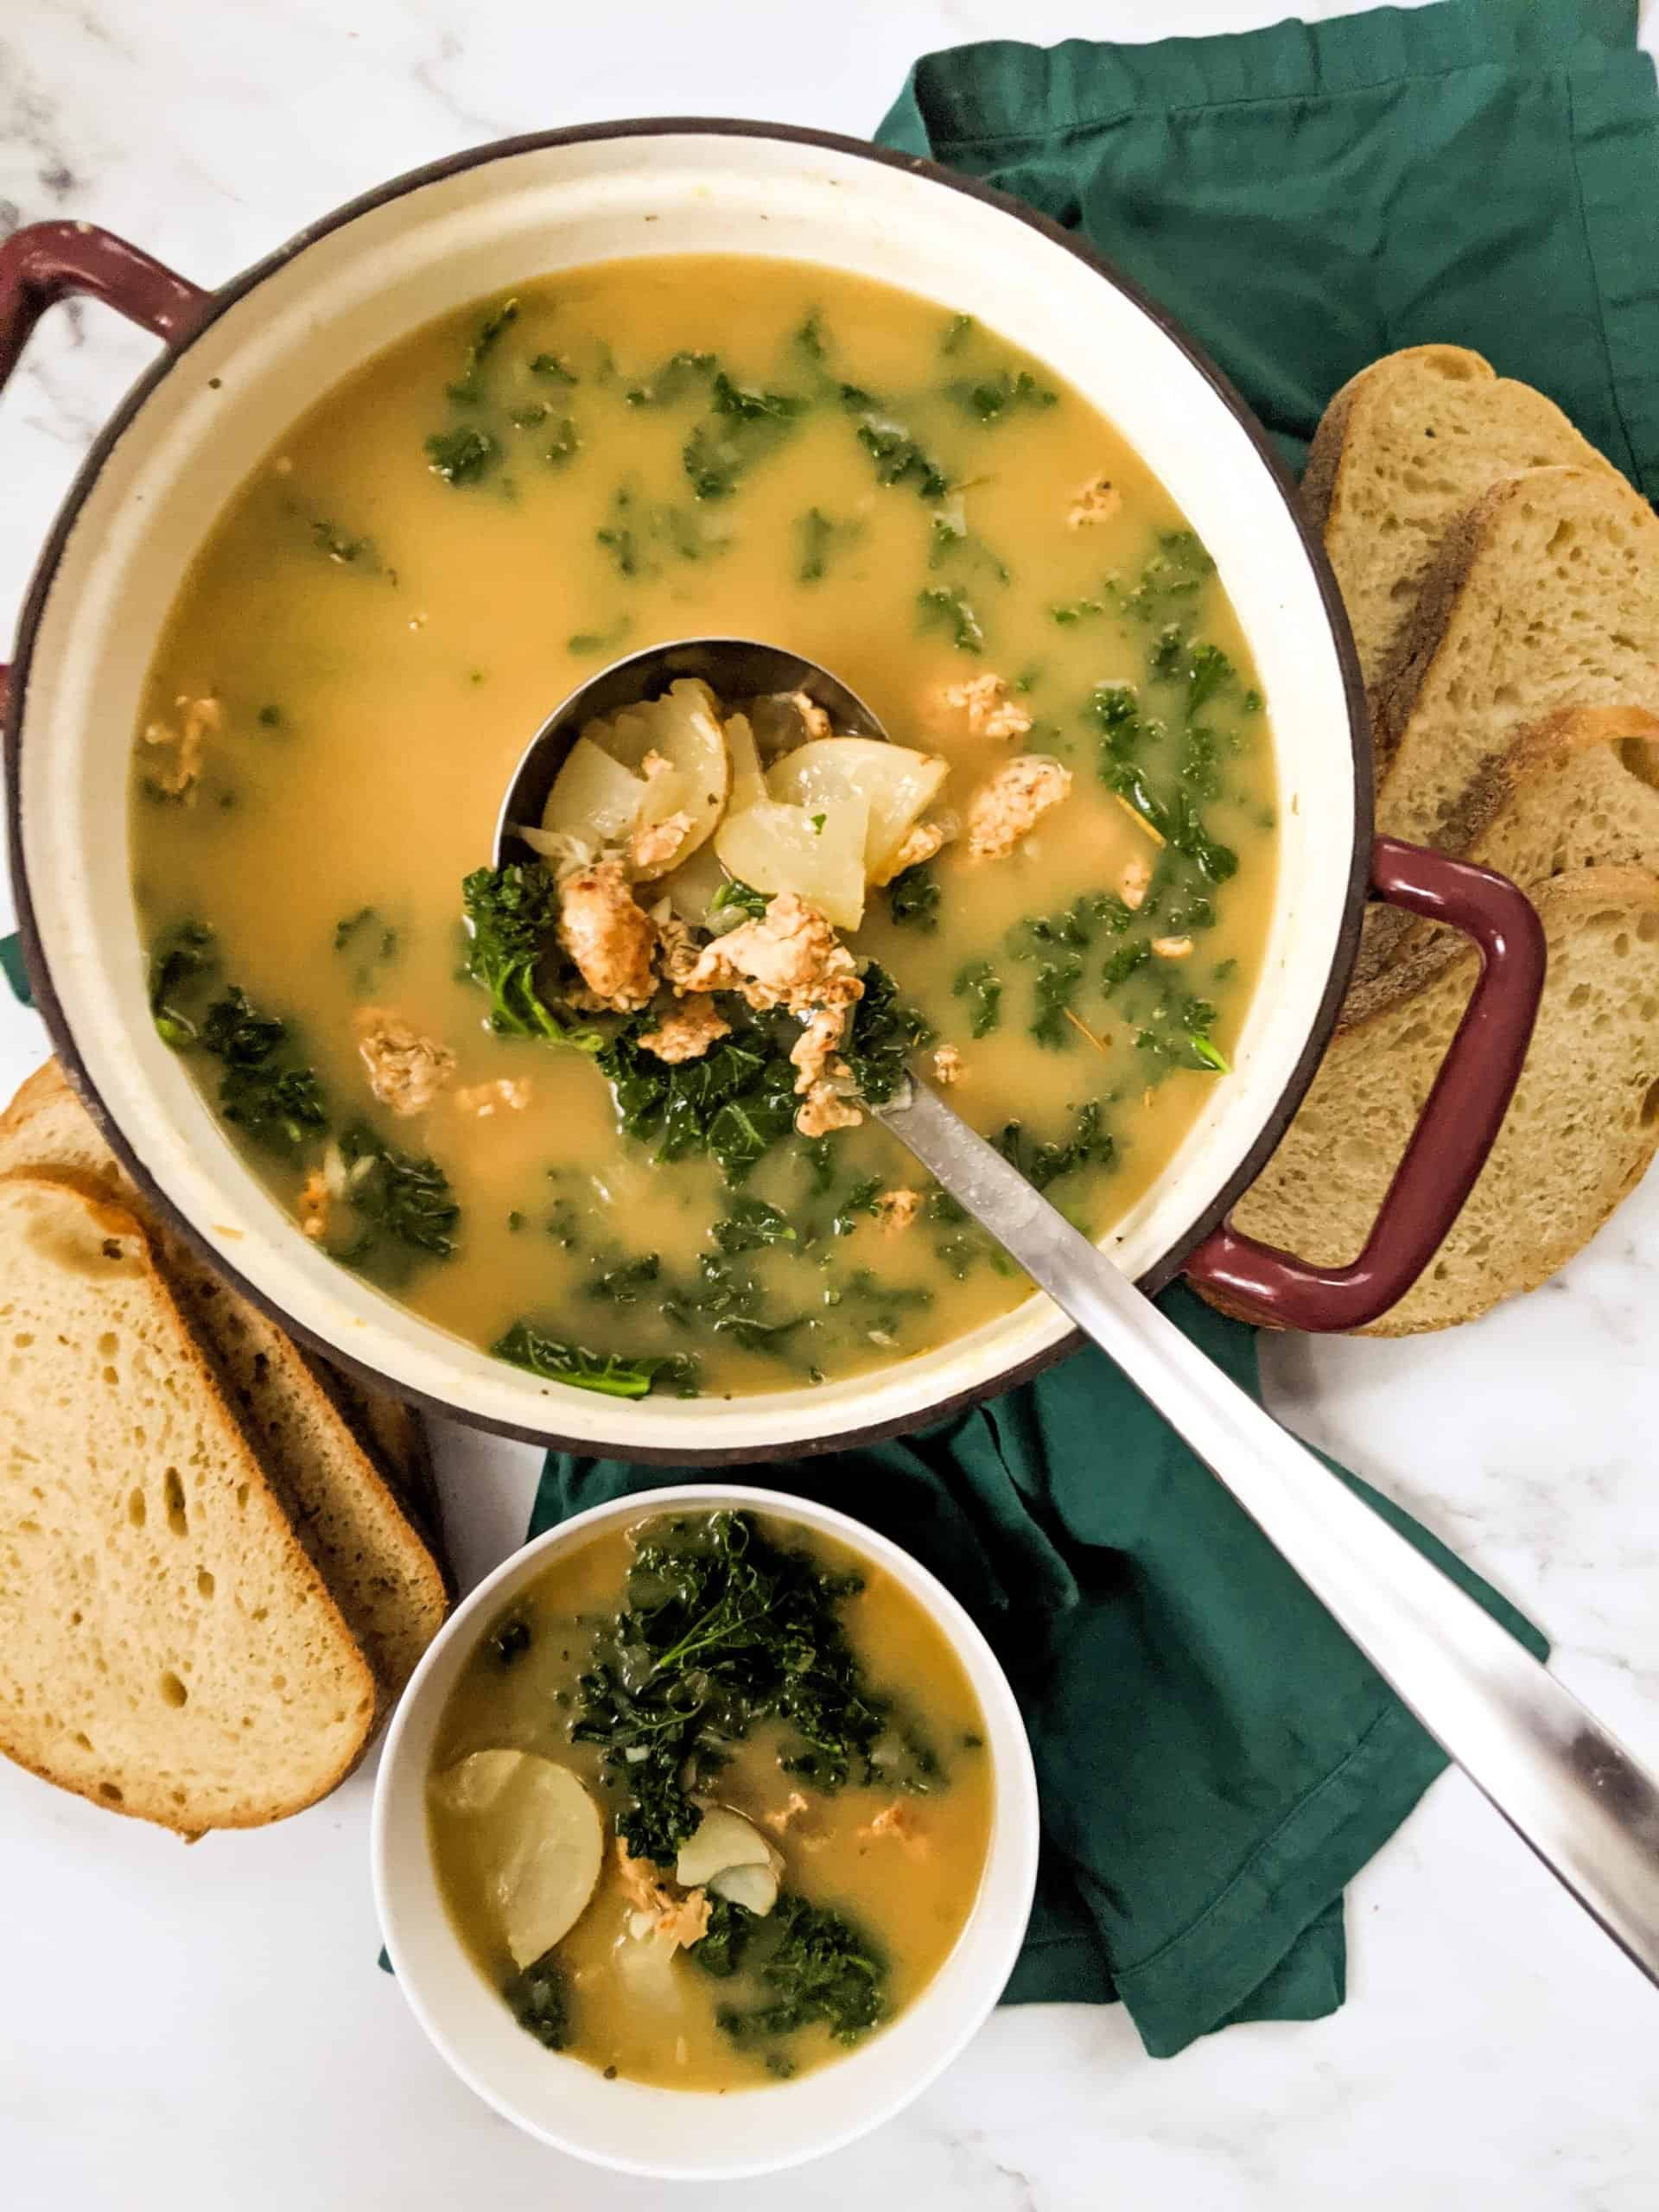 Dwardcooks Healthy Zuppa Toscana Weight Watchers Recipe